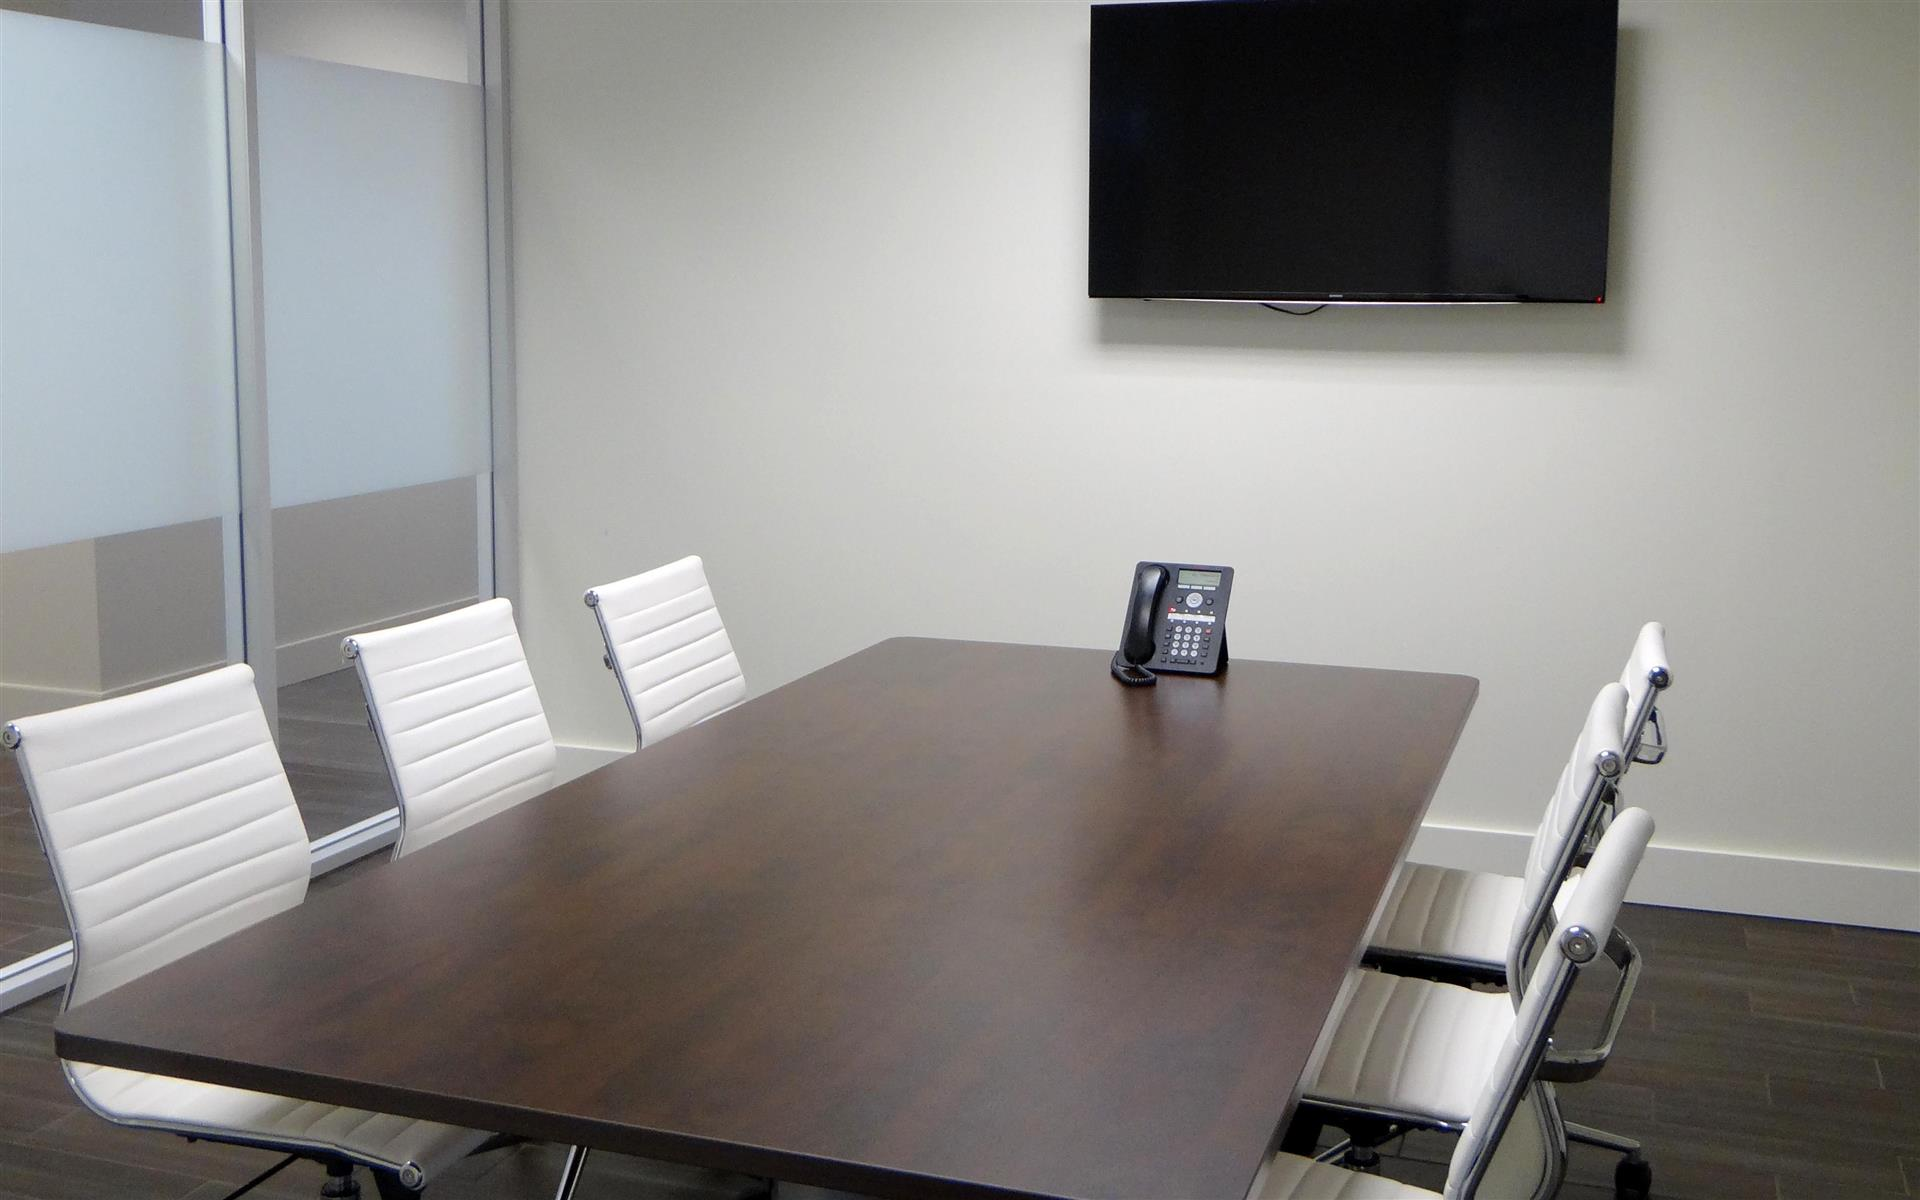 German American Chamber of Commerce of Houston - Small conference room